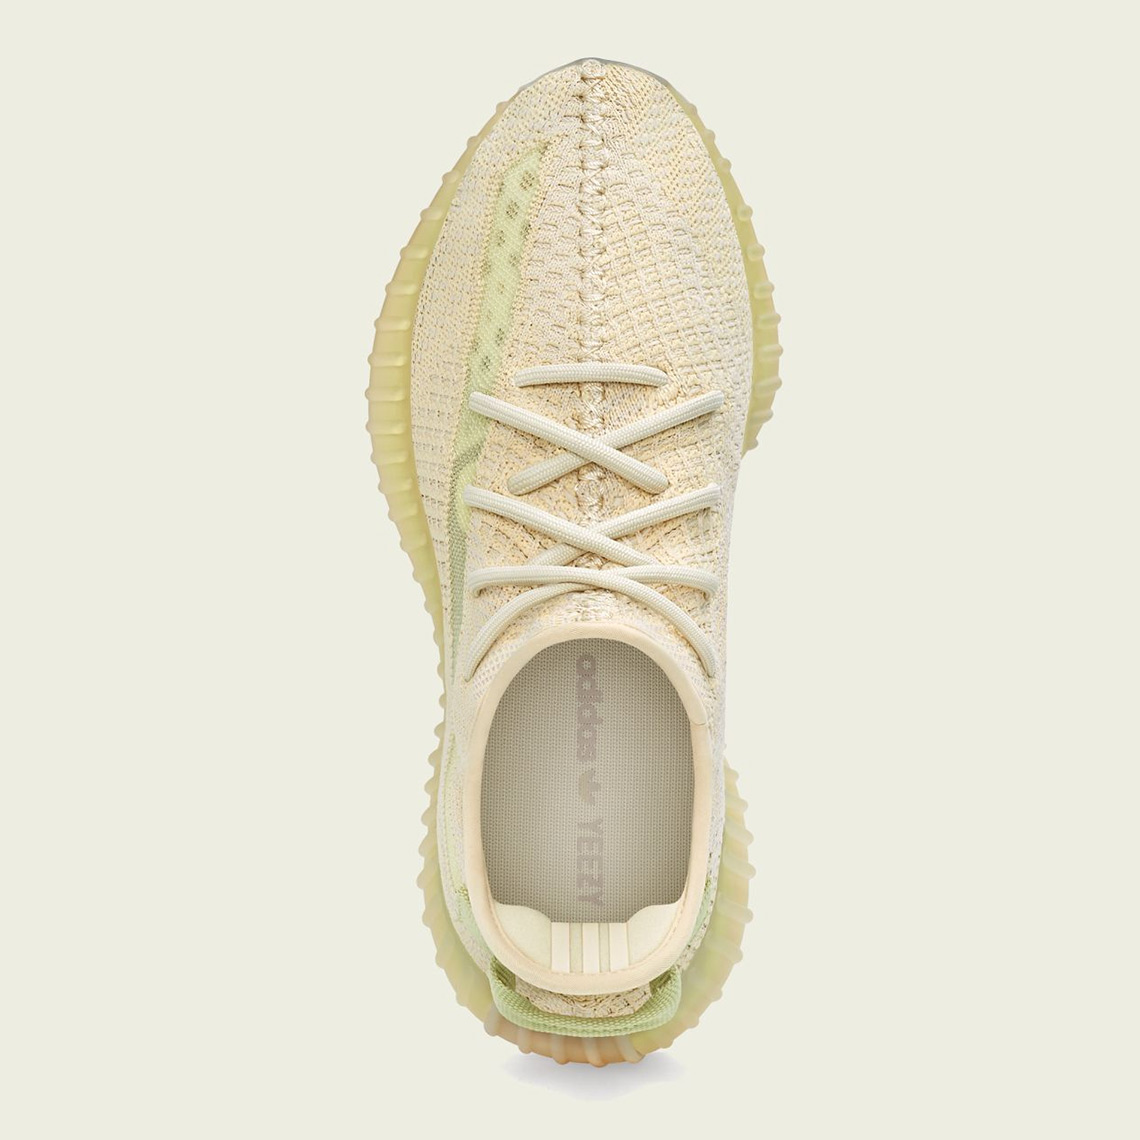 """Adidas Yeezy Boost 350 V2 """"Flax"""" Officially Unveiled: Release Details"""